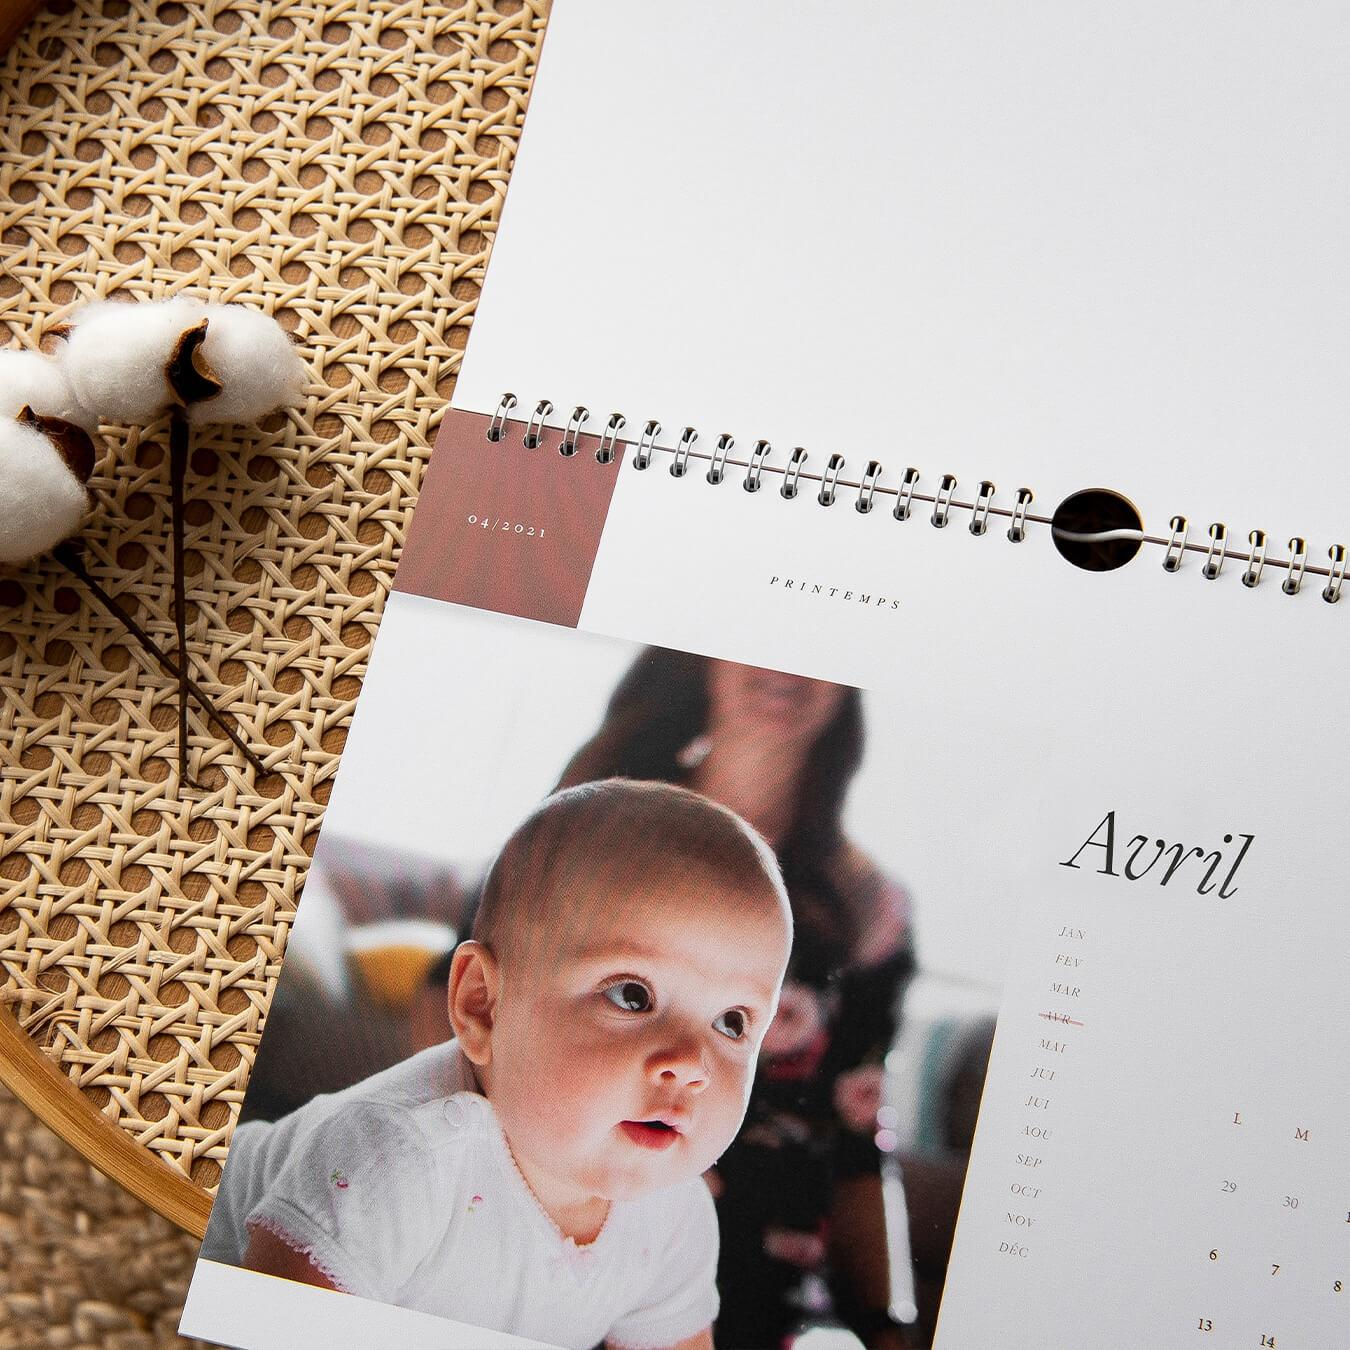 The Calendar - Personalized Calendar - Photo Calendar - Innocence Paris